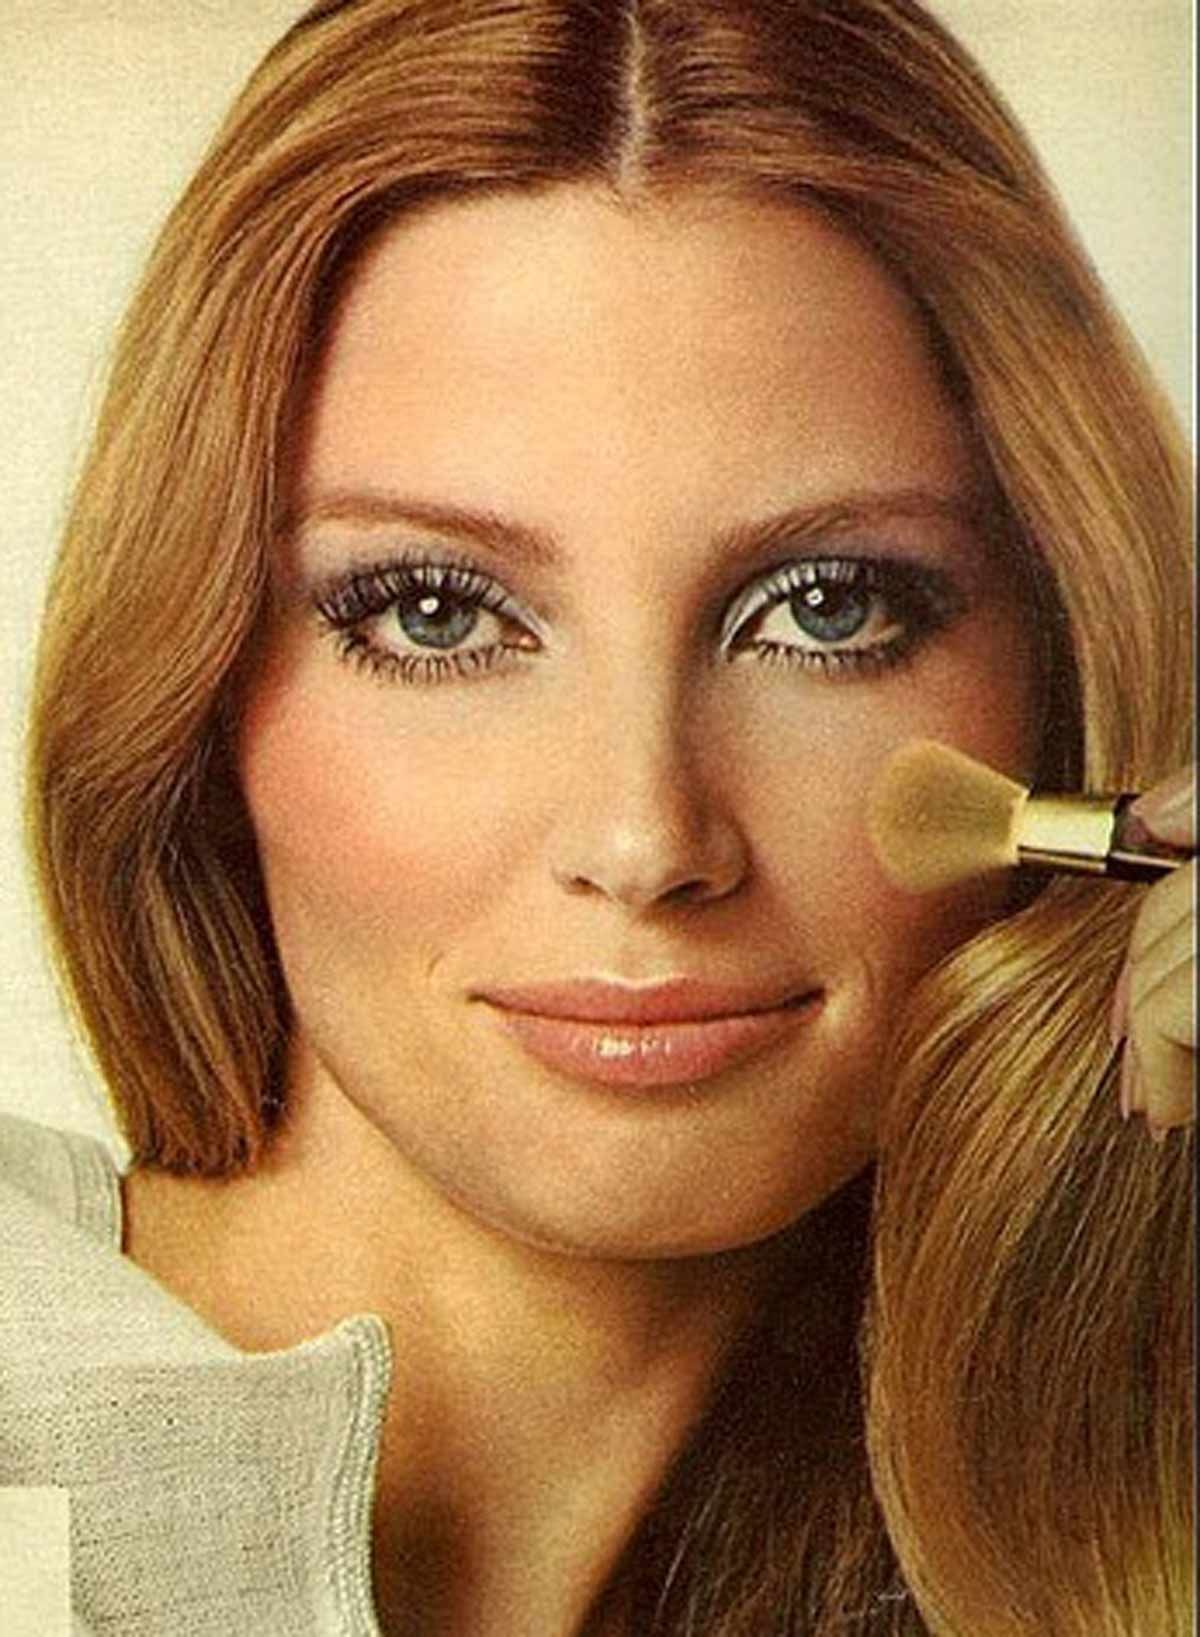 70s style makeup and hair the 1970s makeup look 5 key points 70 s 1970s makeup 9335 | 77cbbc5a88e14808ccb633cce83afc80